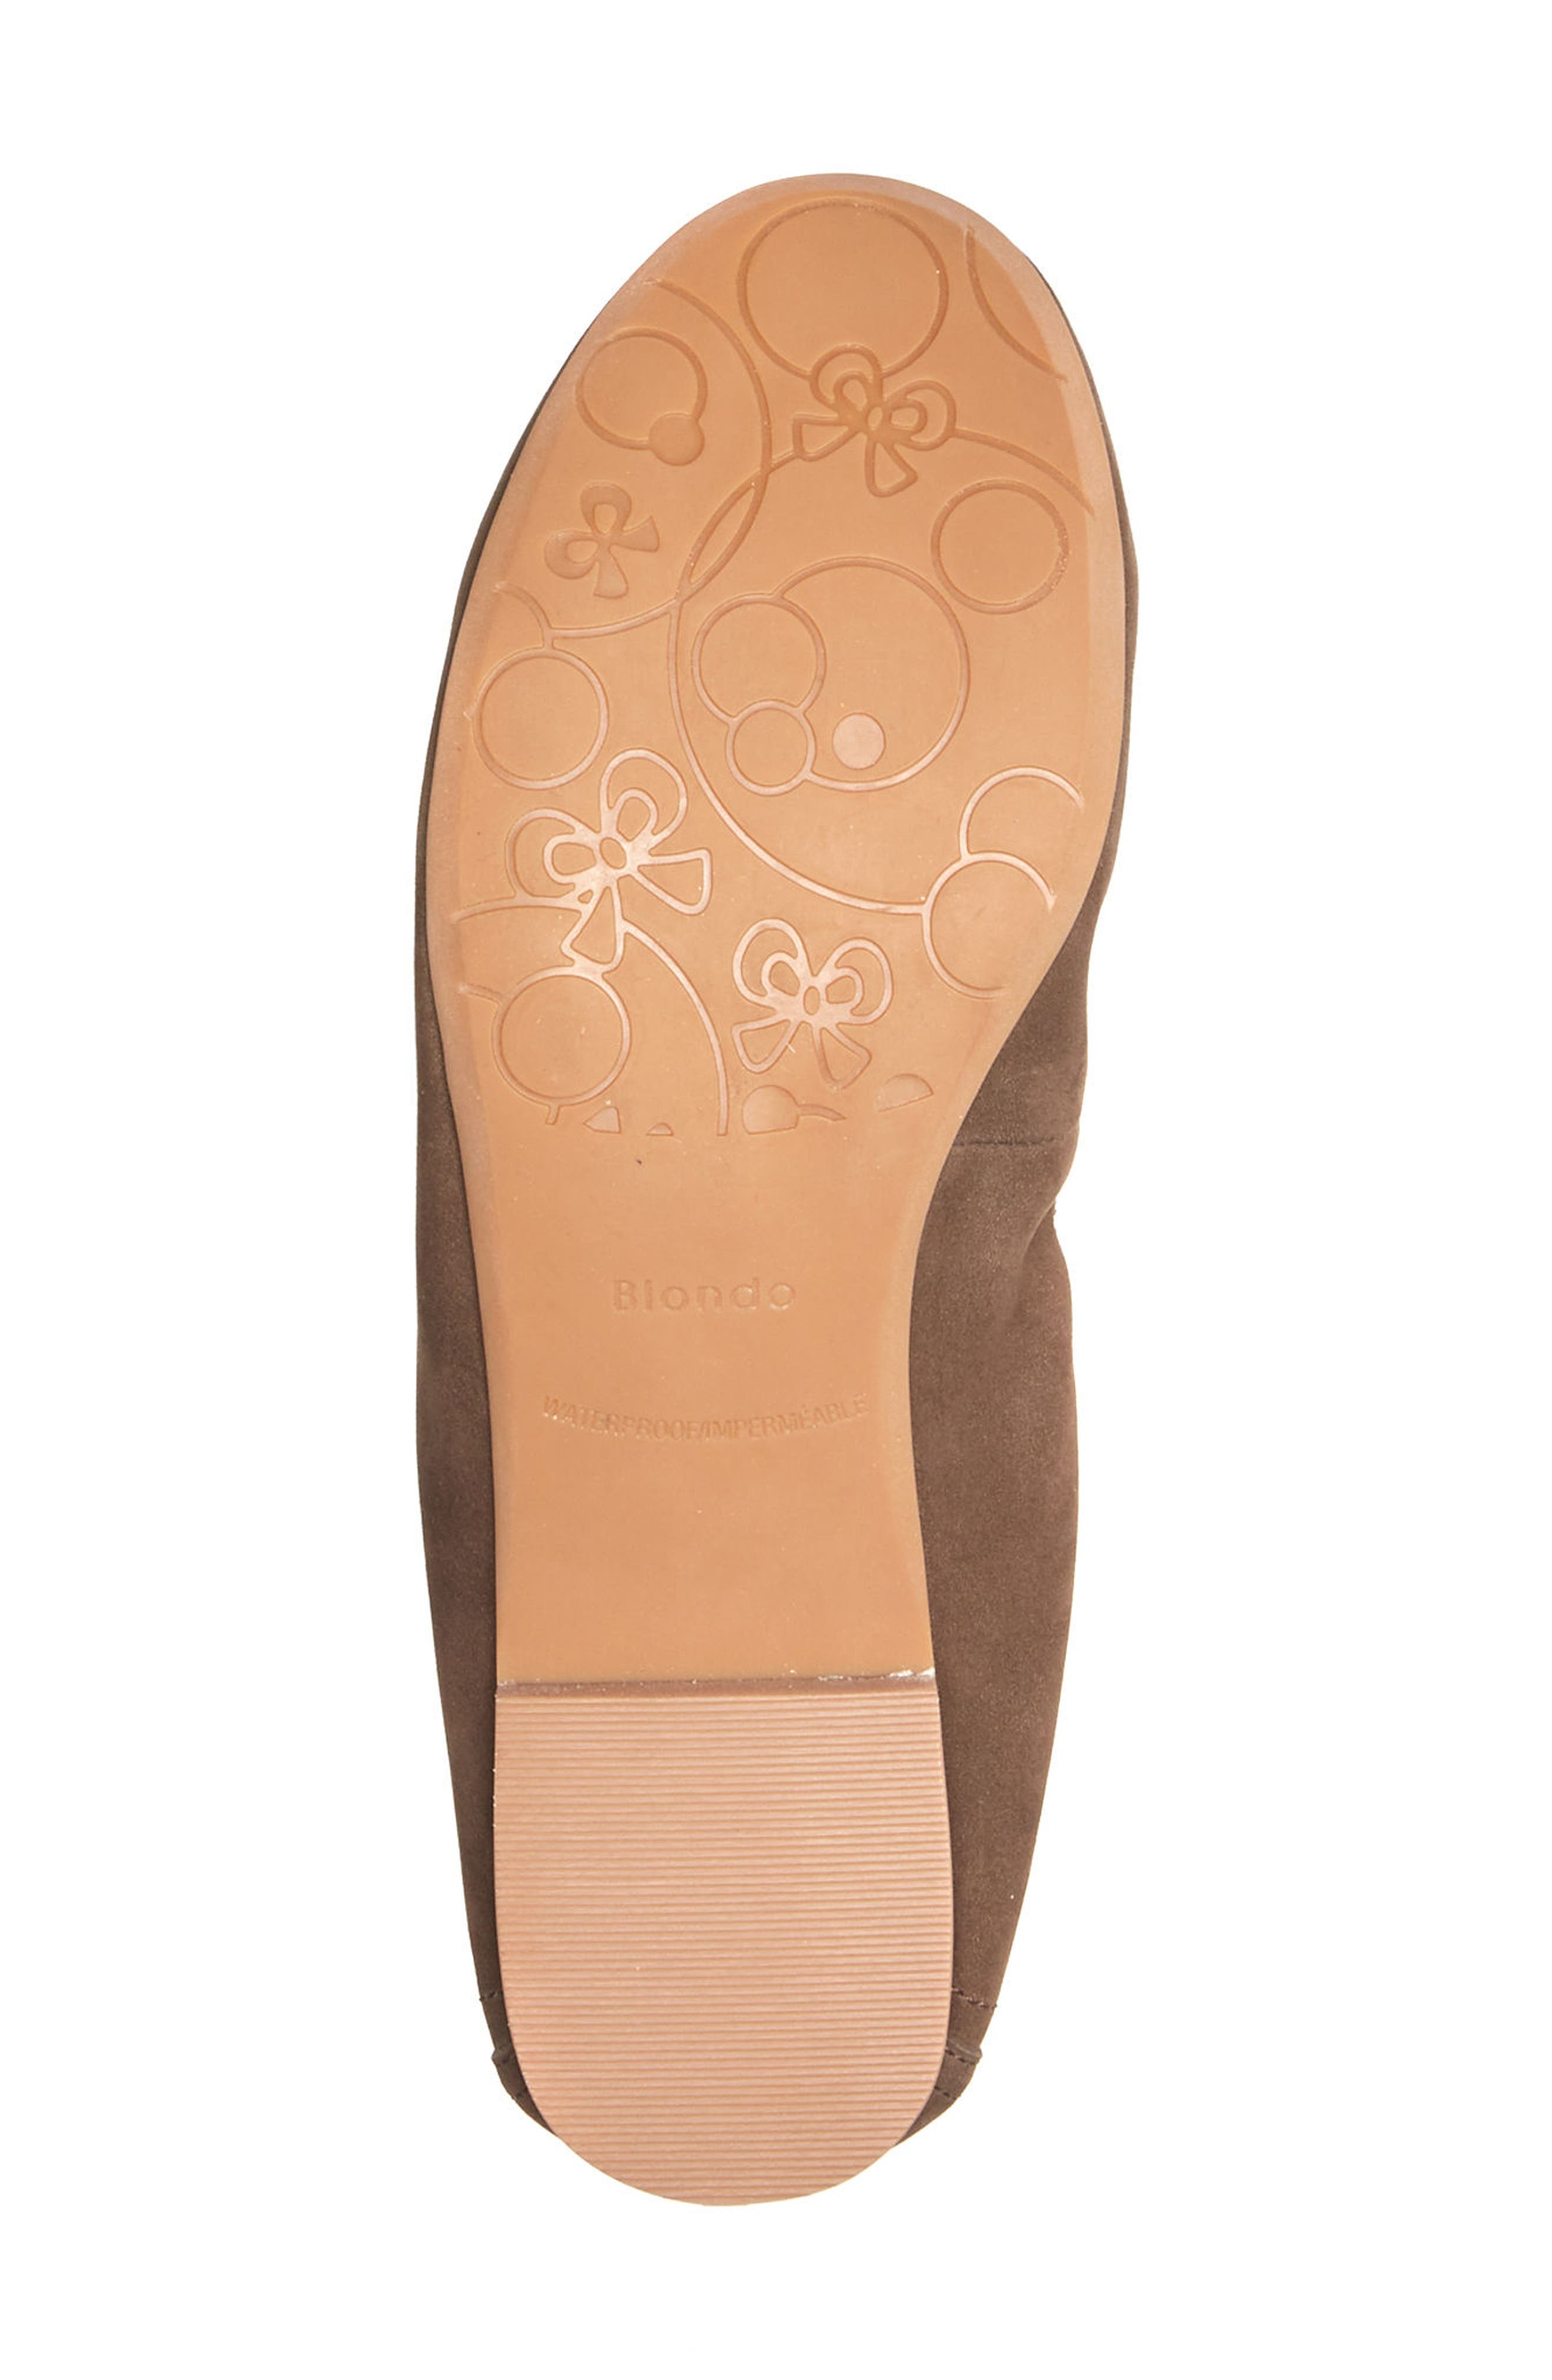 Becca Waterproof Flat,                             Alternate thumbnail 6, color,                             Taupe Nubuck Leather